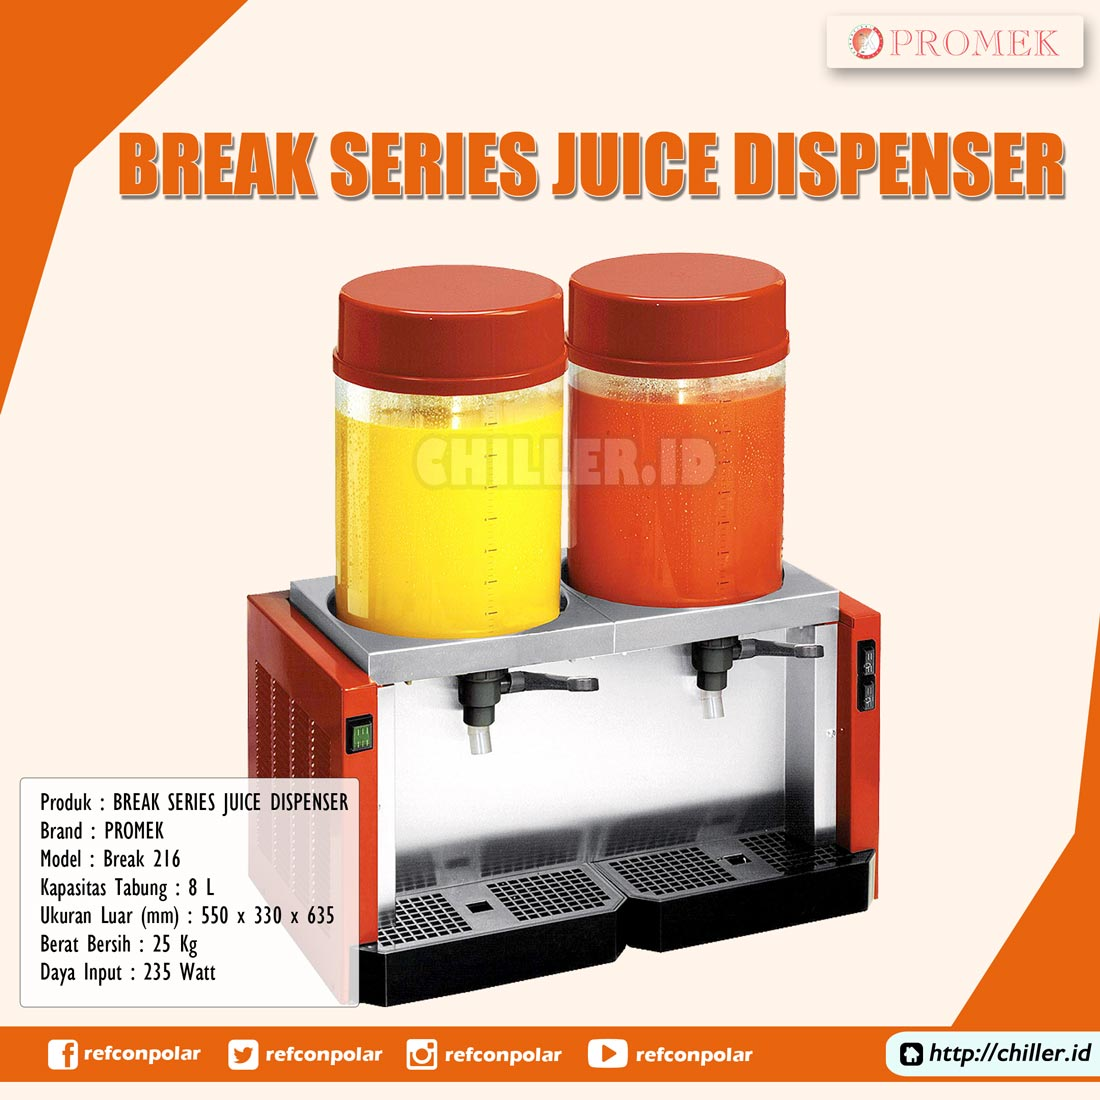 Break 216 Promek Break Series Juice Dispenser